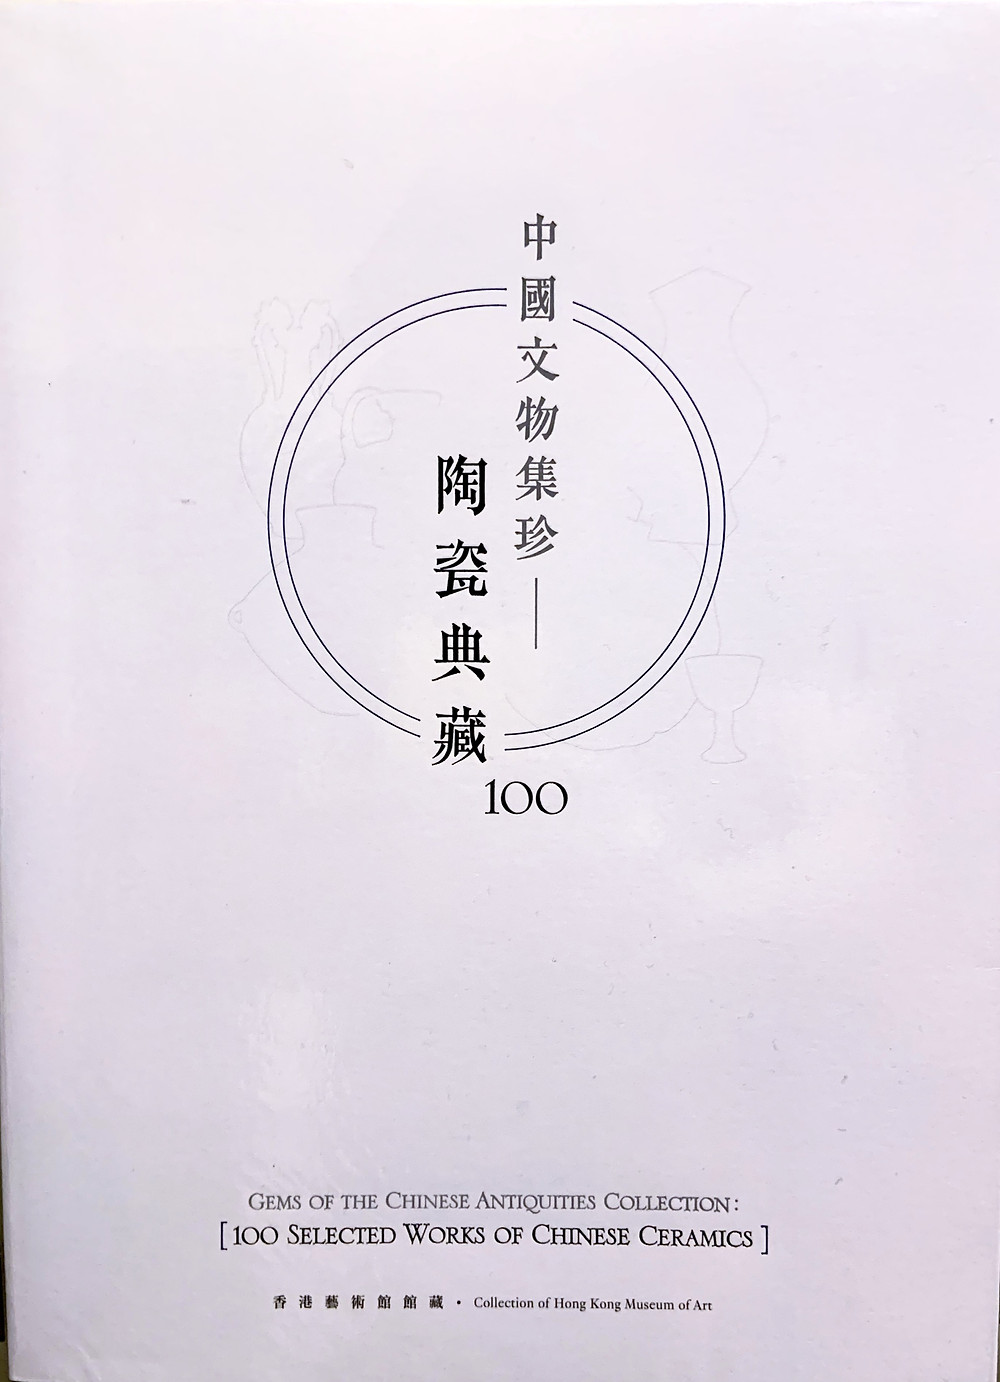 Gems of the Chinese Antiquities Collection: 100 Selected Works of Chinese Ceramics